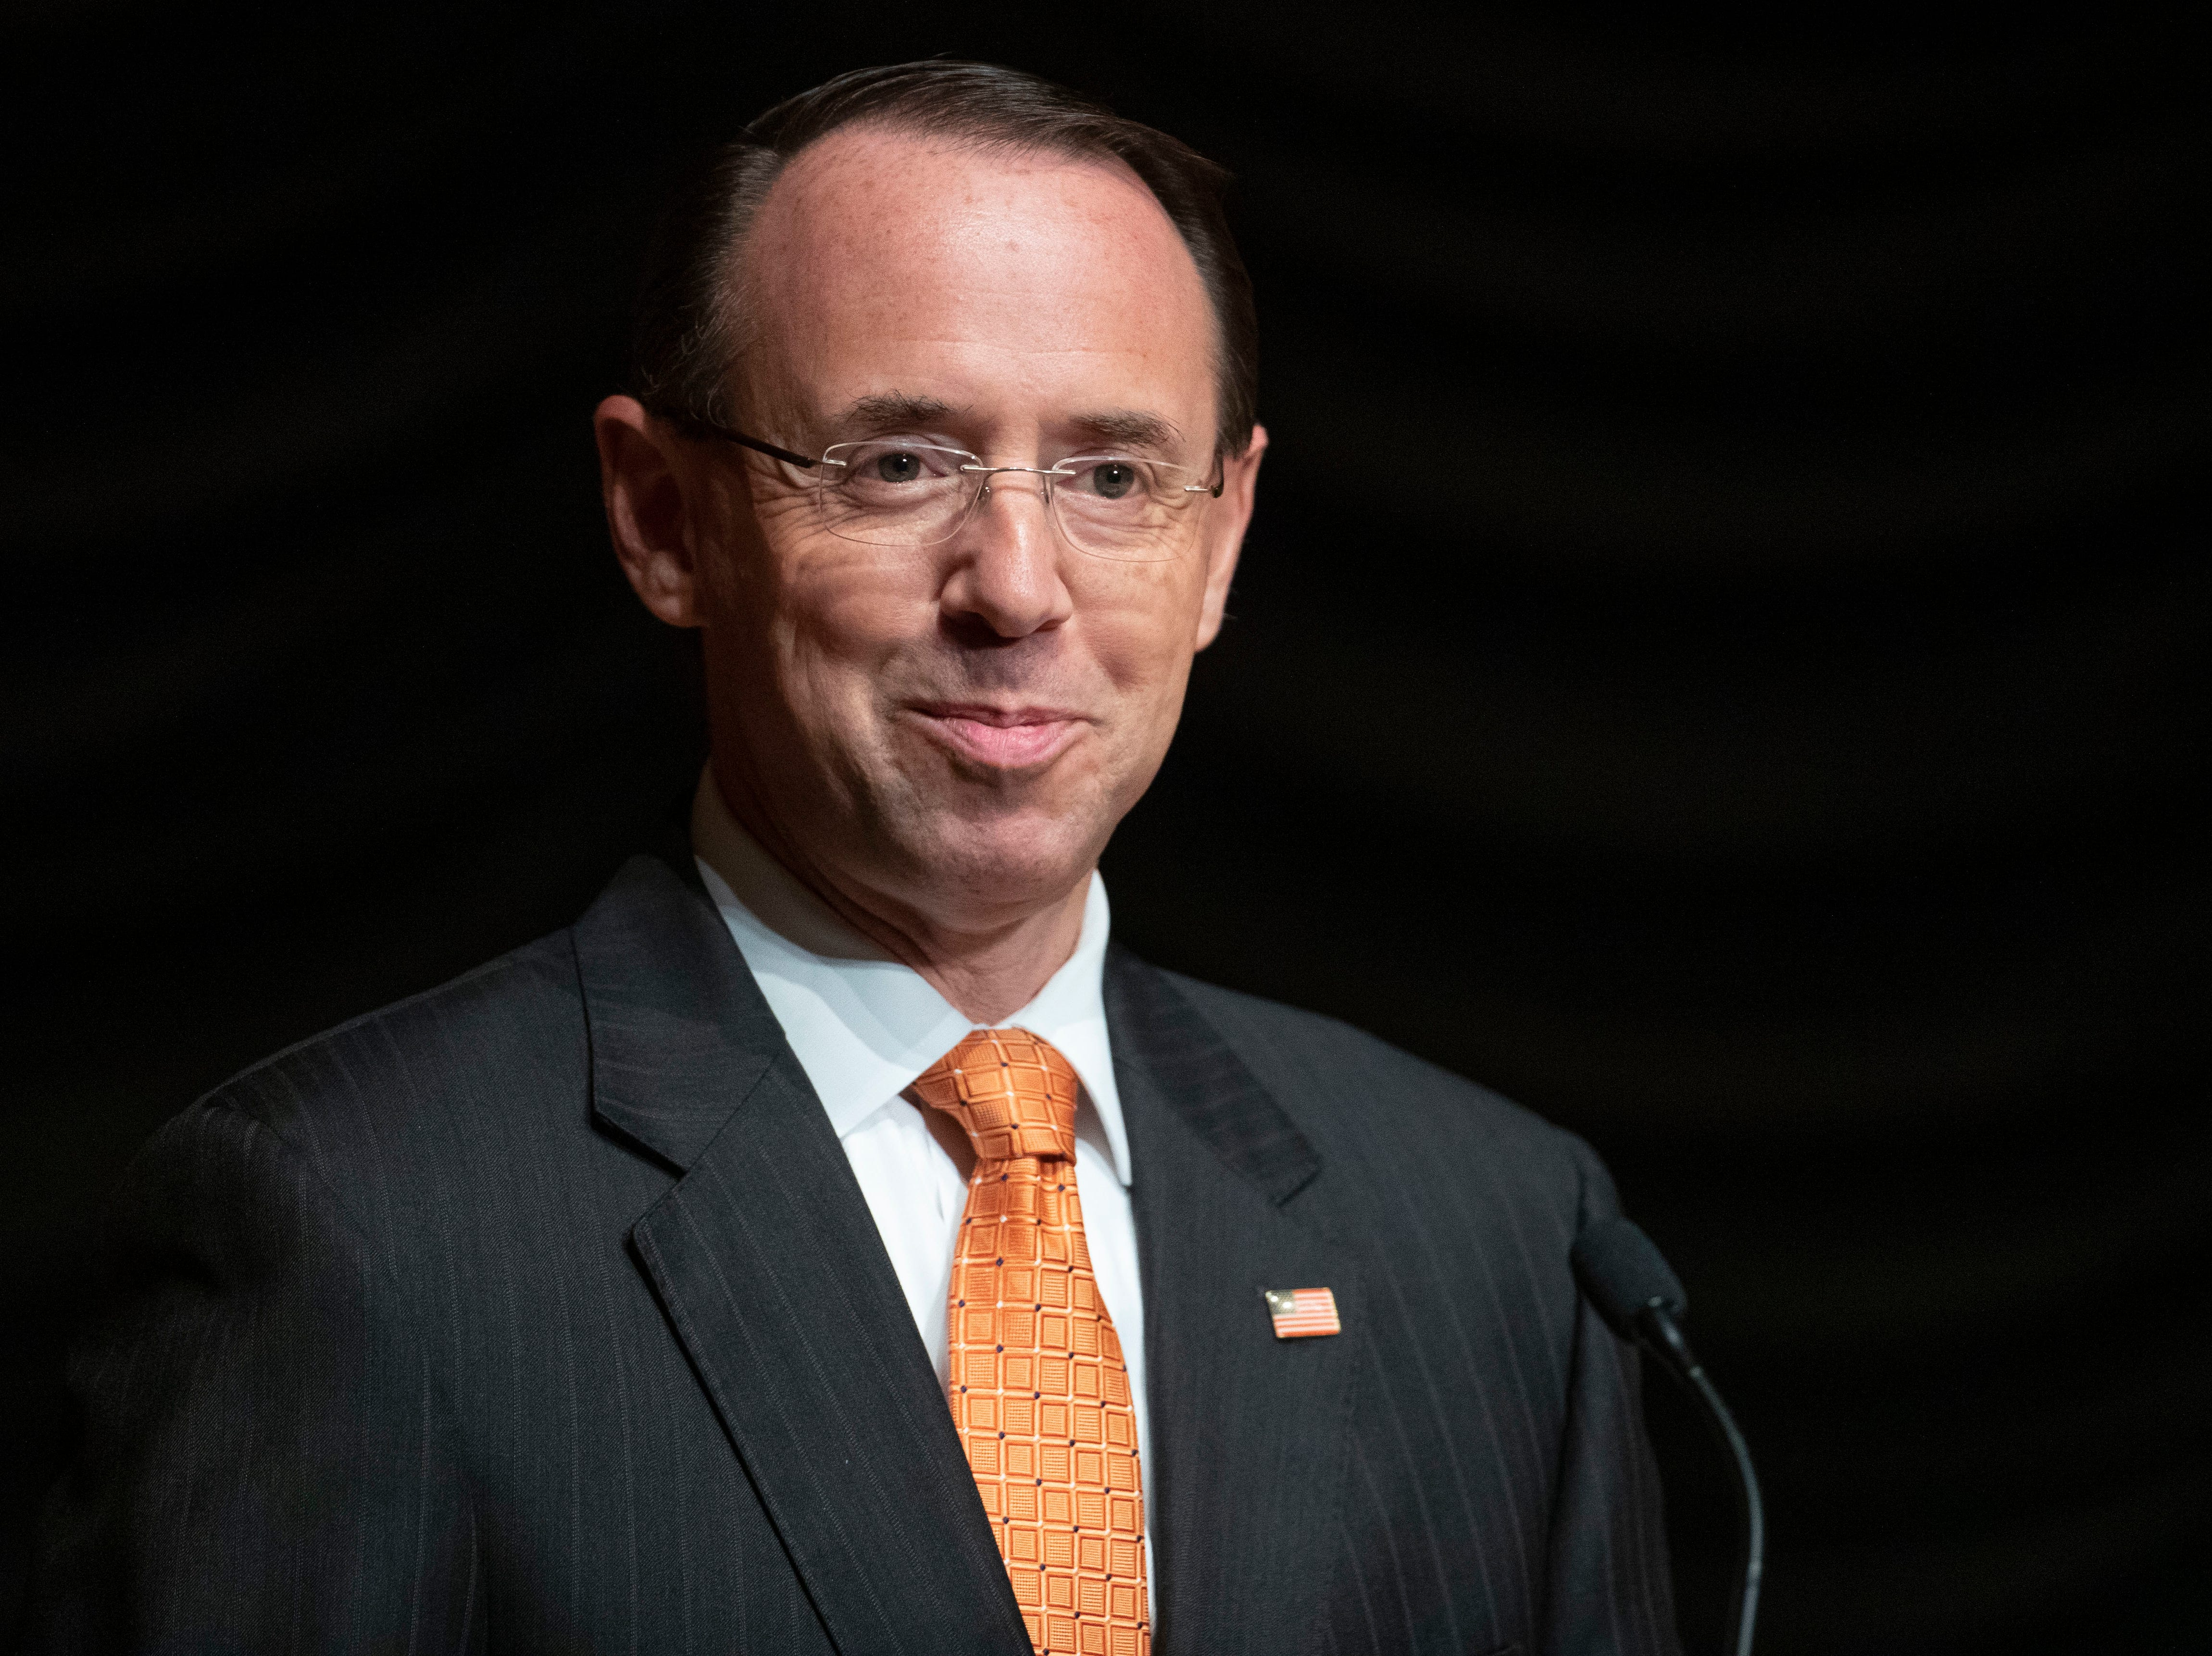 Deputy AG Rod Rosenstein offers staunch defense of Russia investigation, jabs Obama administration